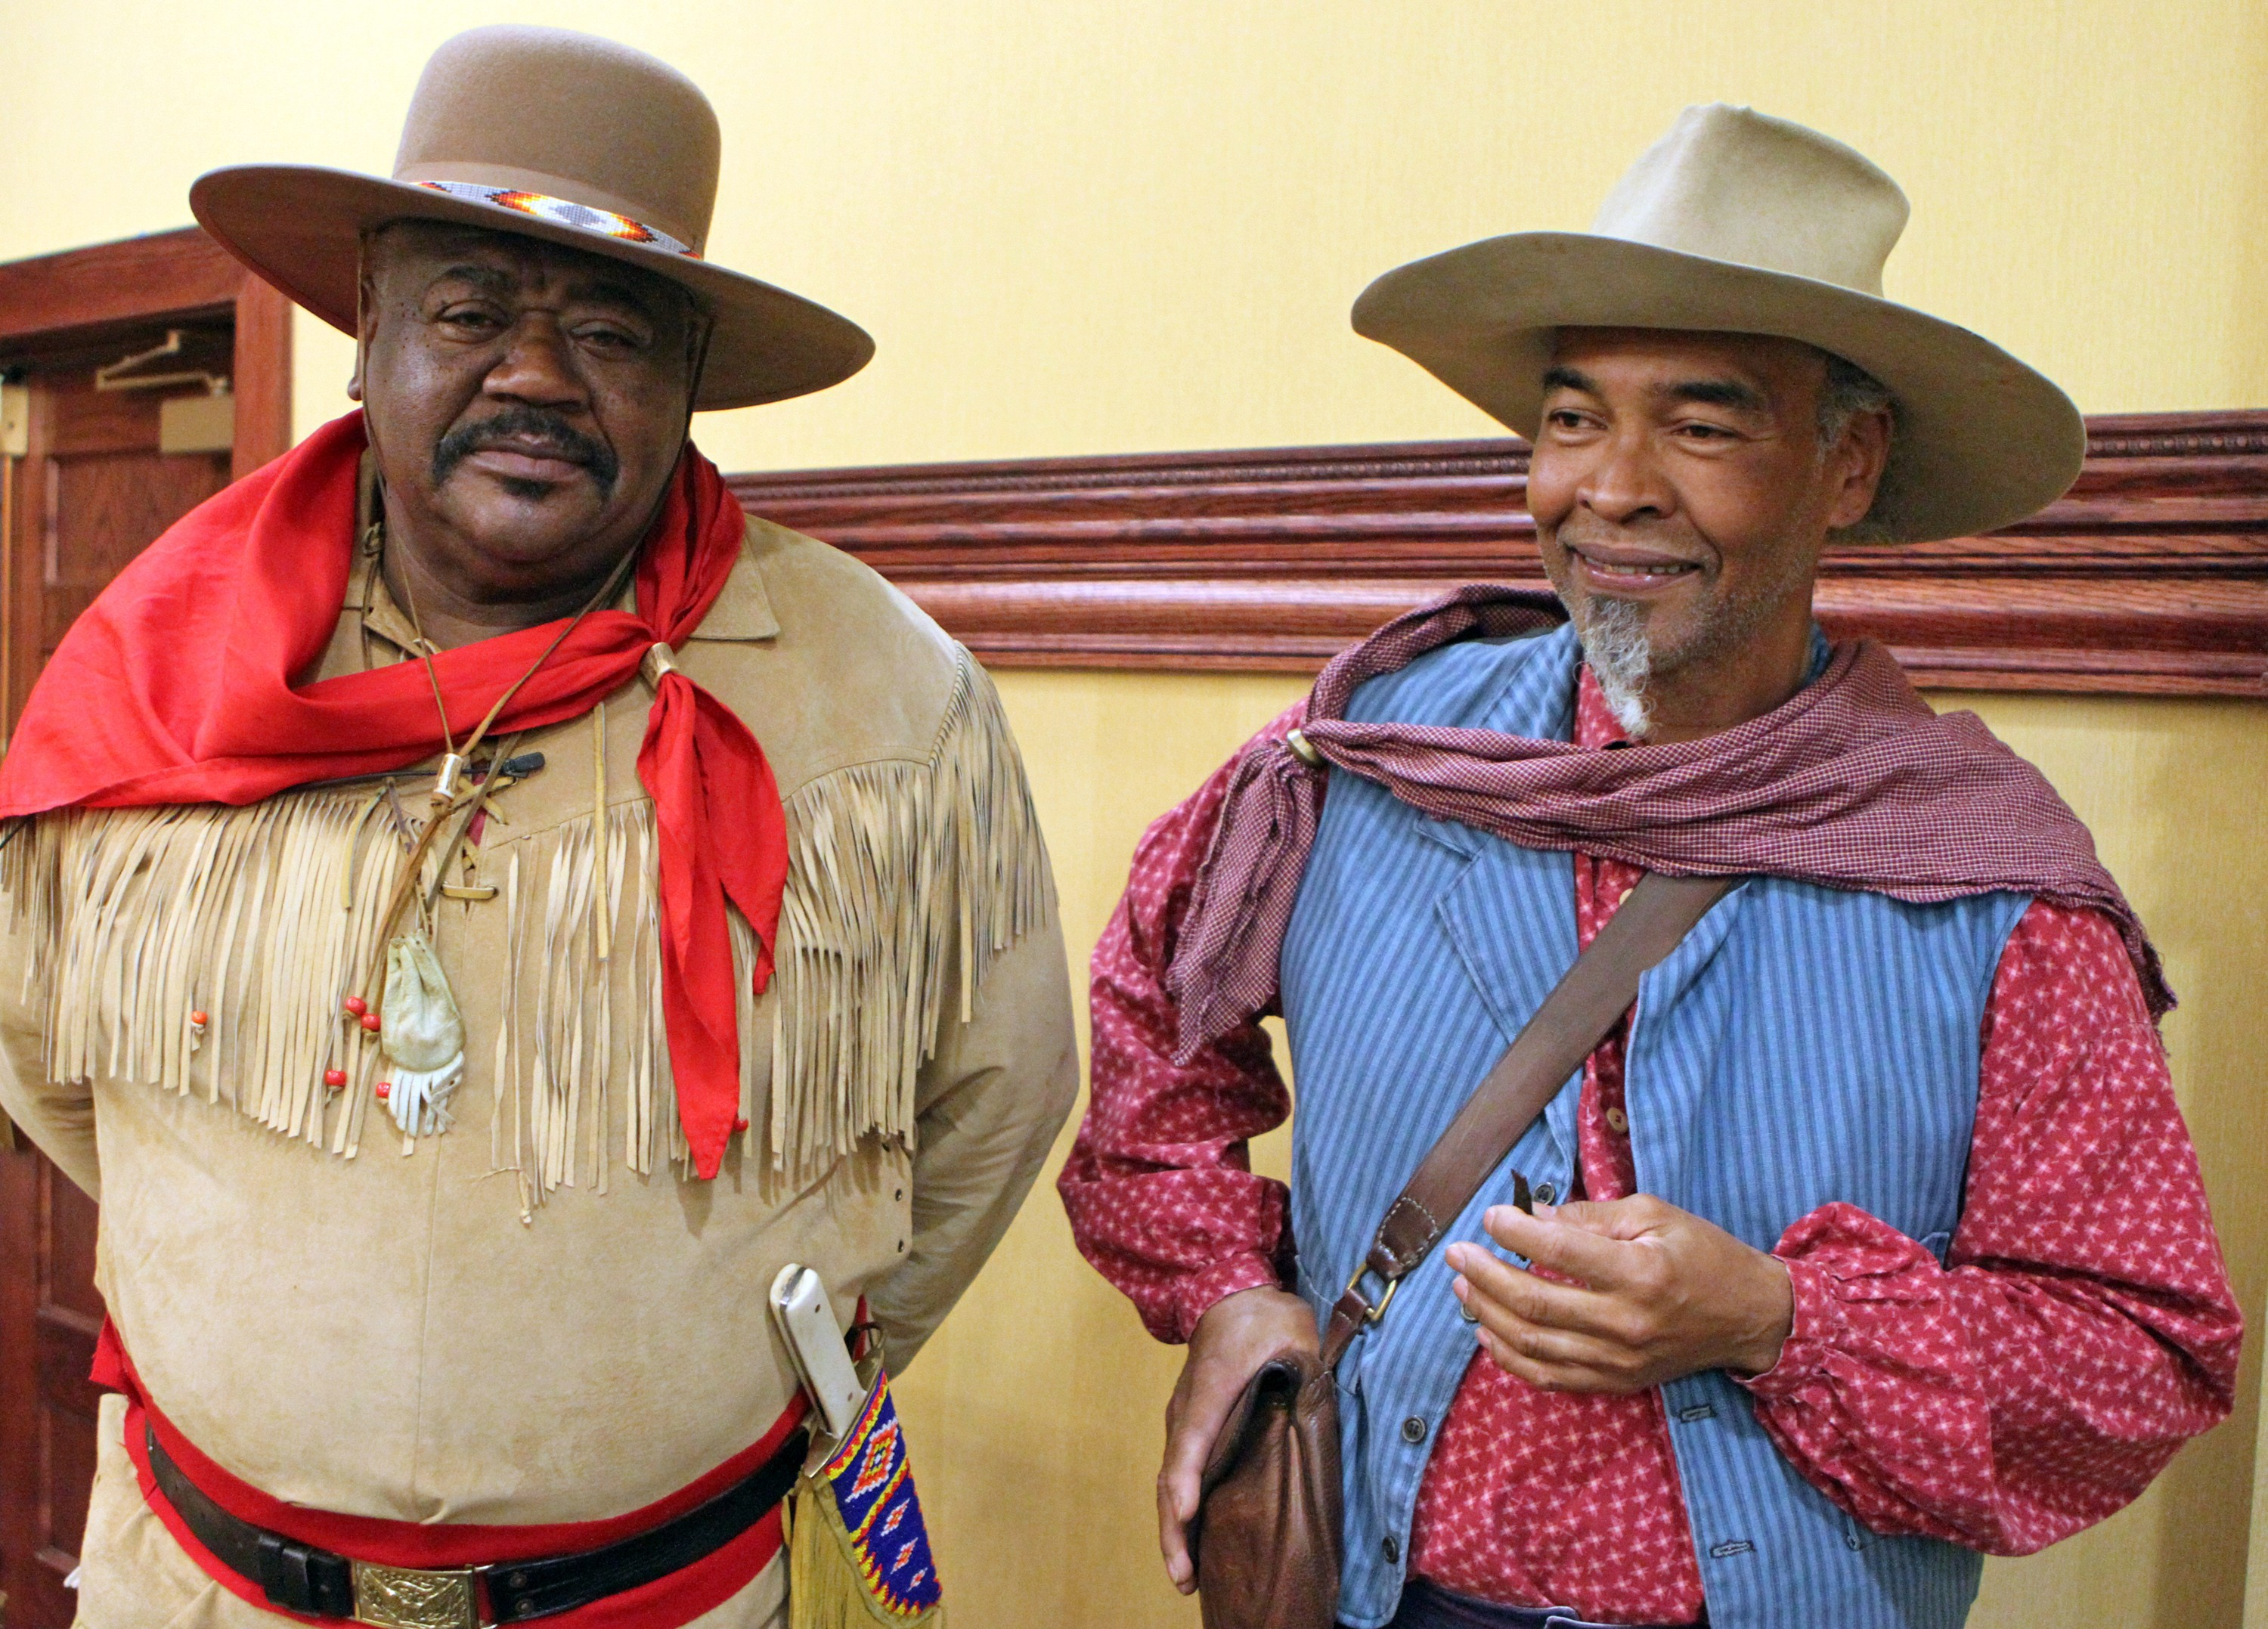 Soulful, sad story of an African-American cowboy | Article | The